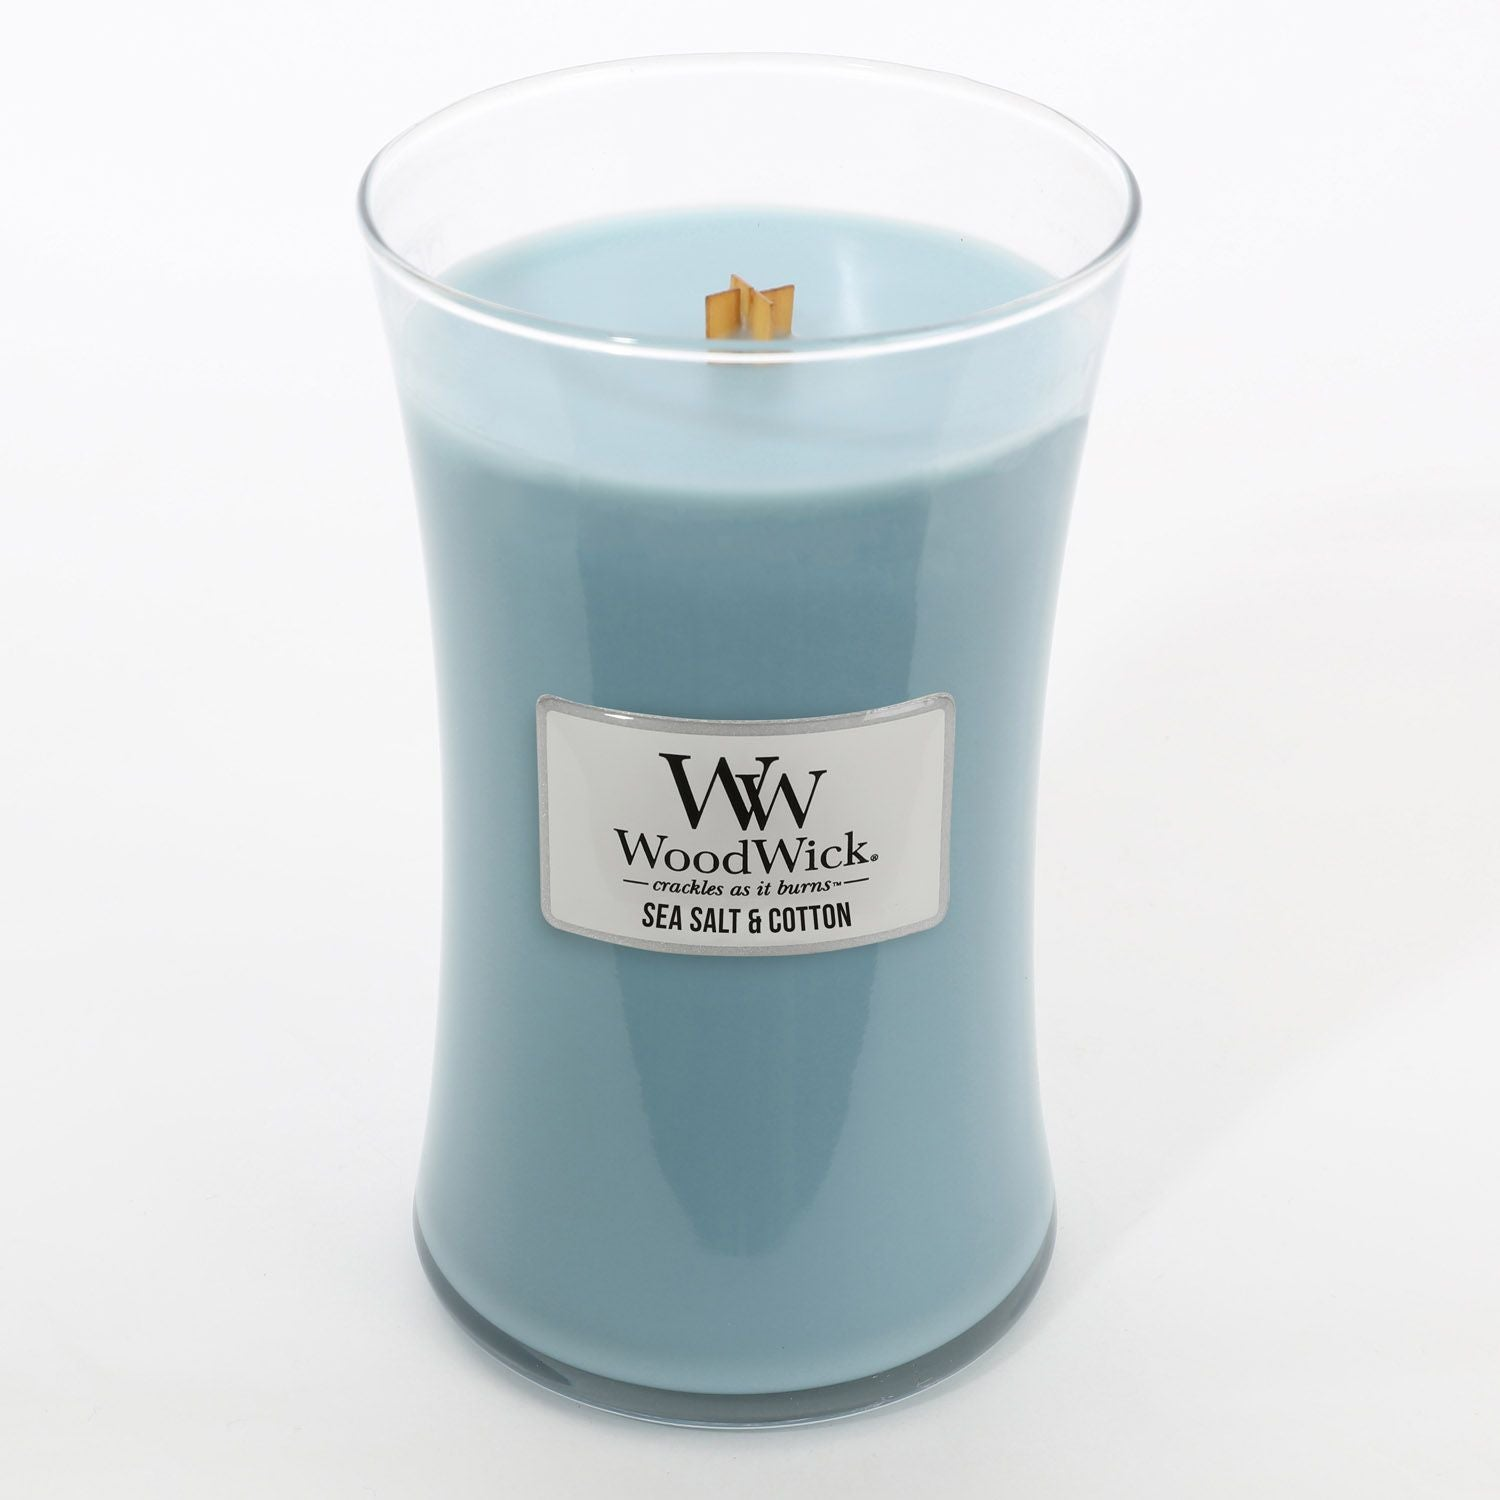 Large Sea Salt & Cotton Scented WoodWick Soy Candle